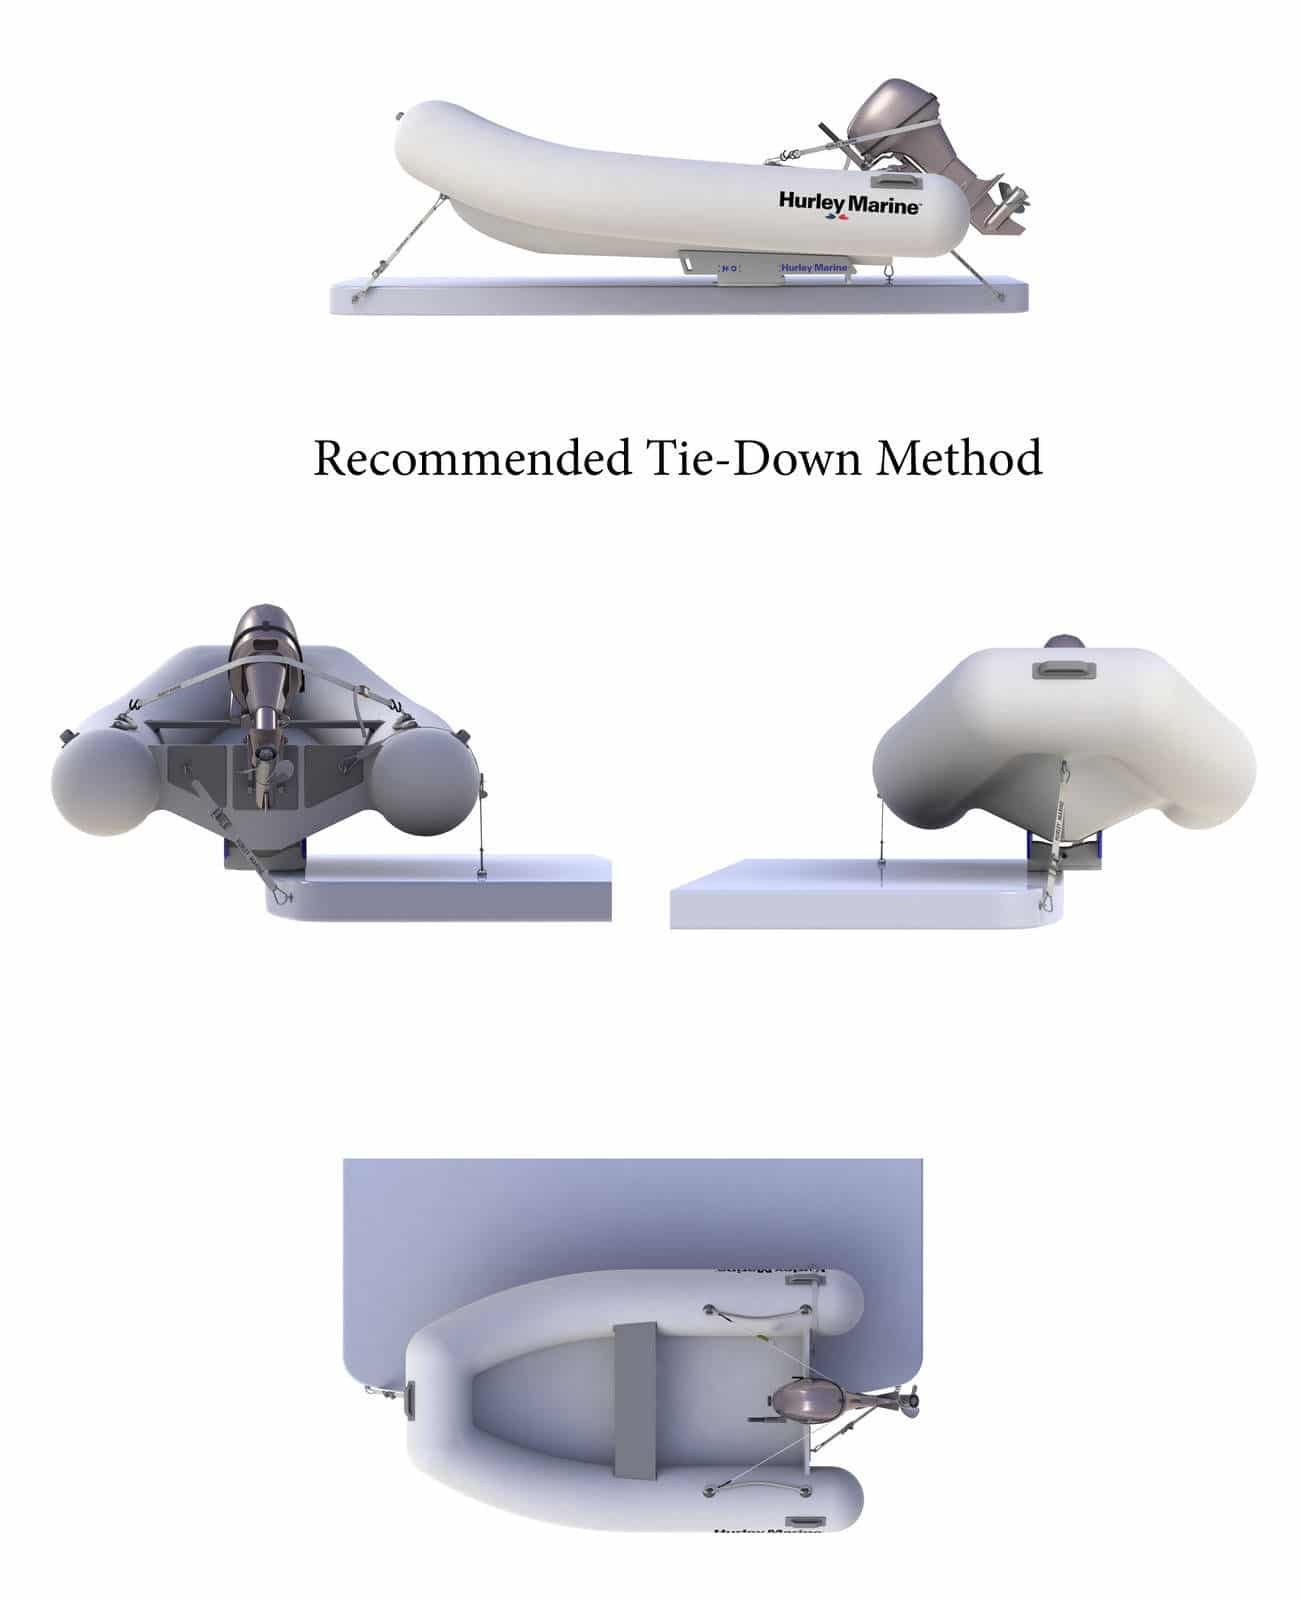 H3O Recommended Tie-Down Method